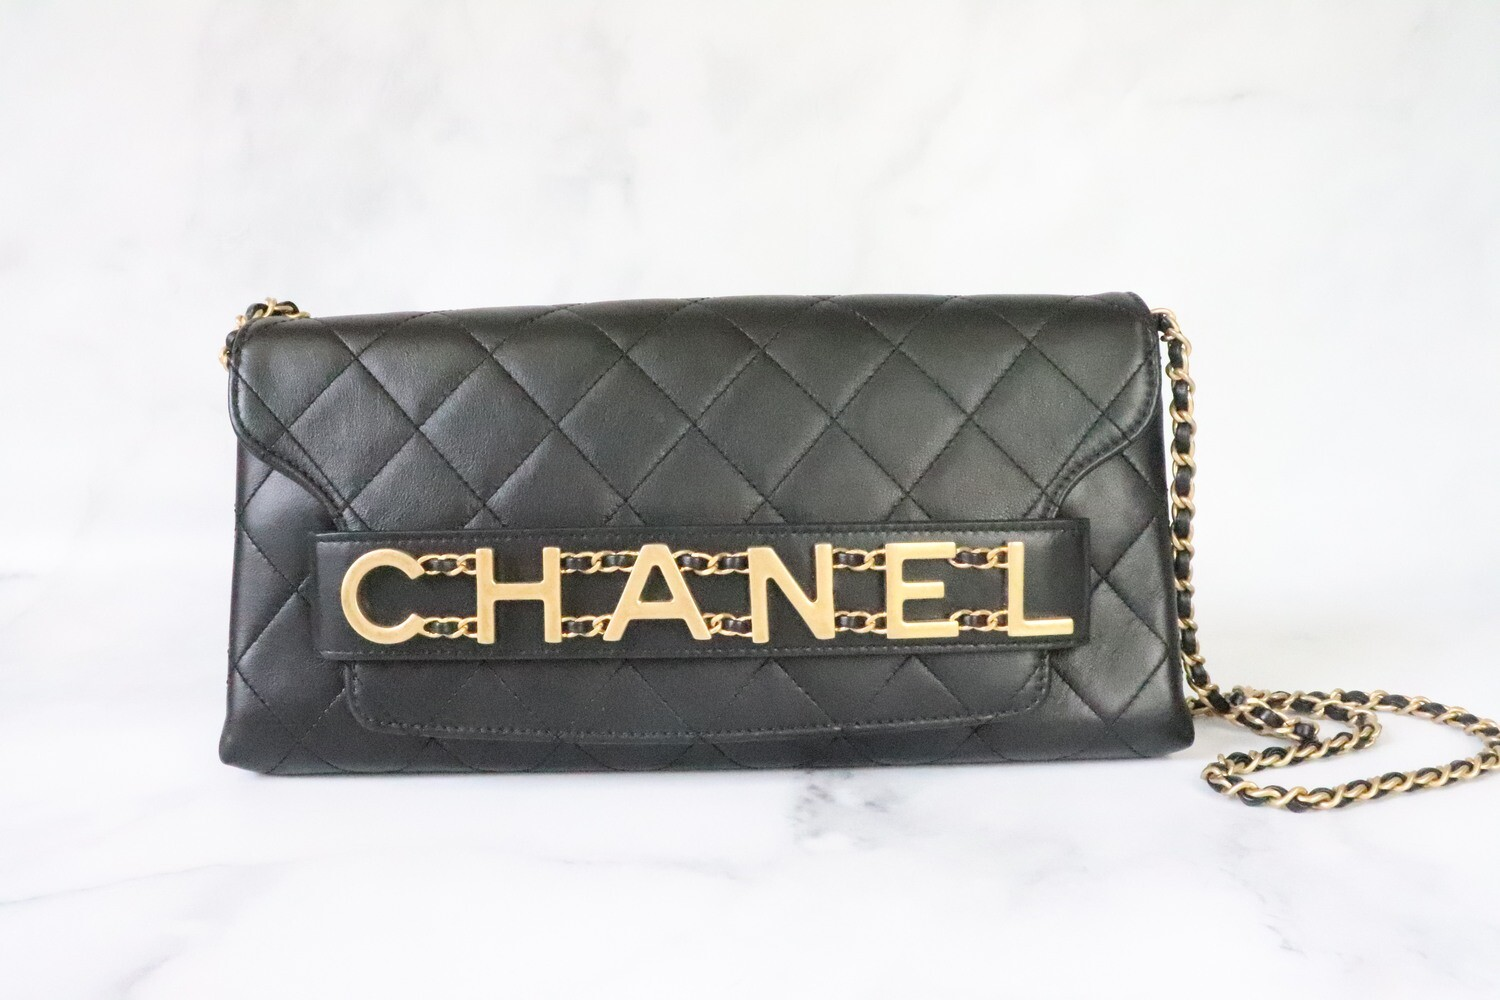 Chanel Black Enchained Clutch Bag, Brushed Gold Hardware, Preowned in Dustbag